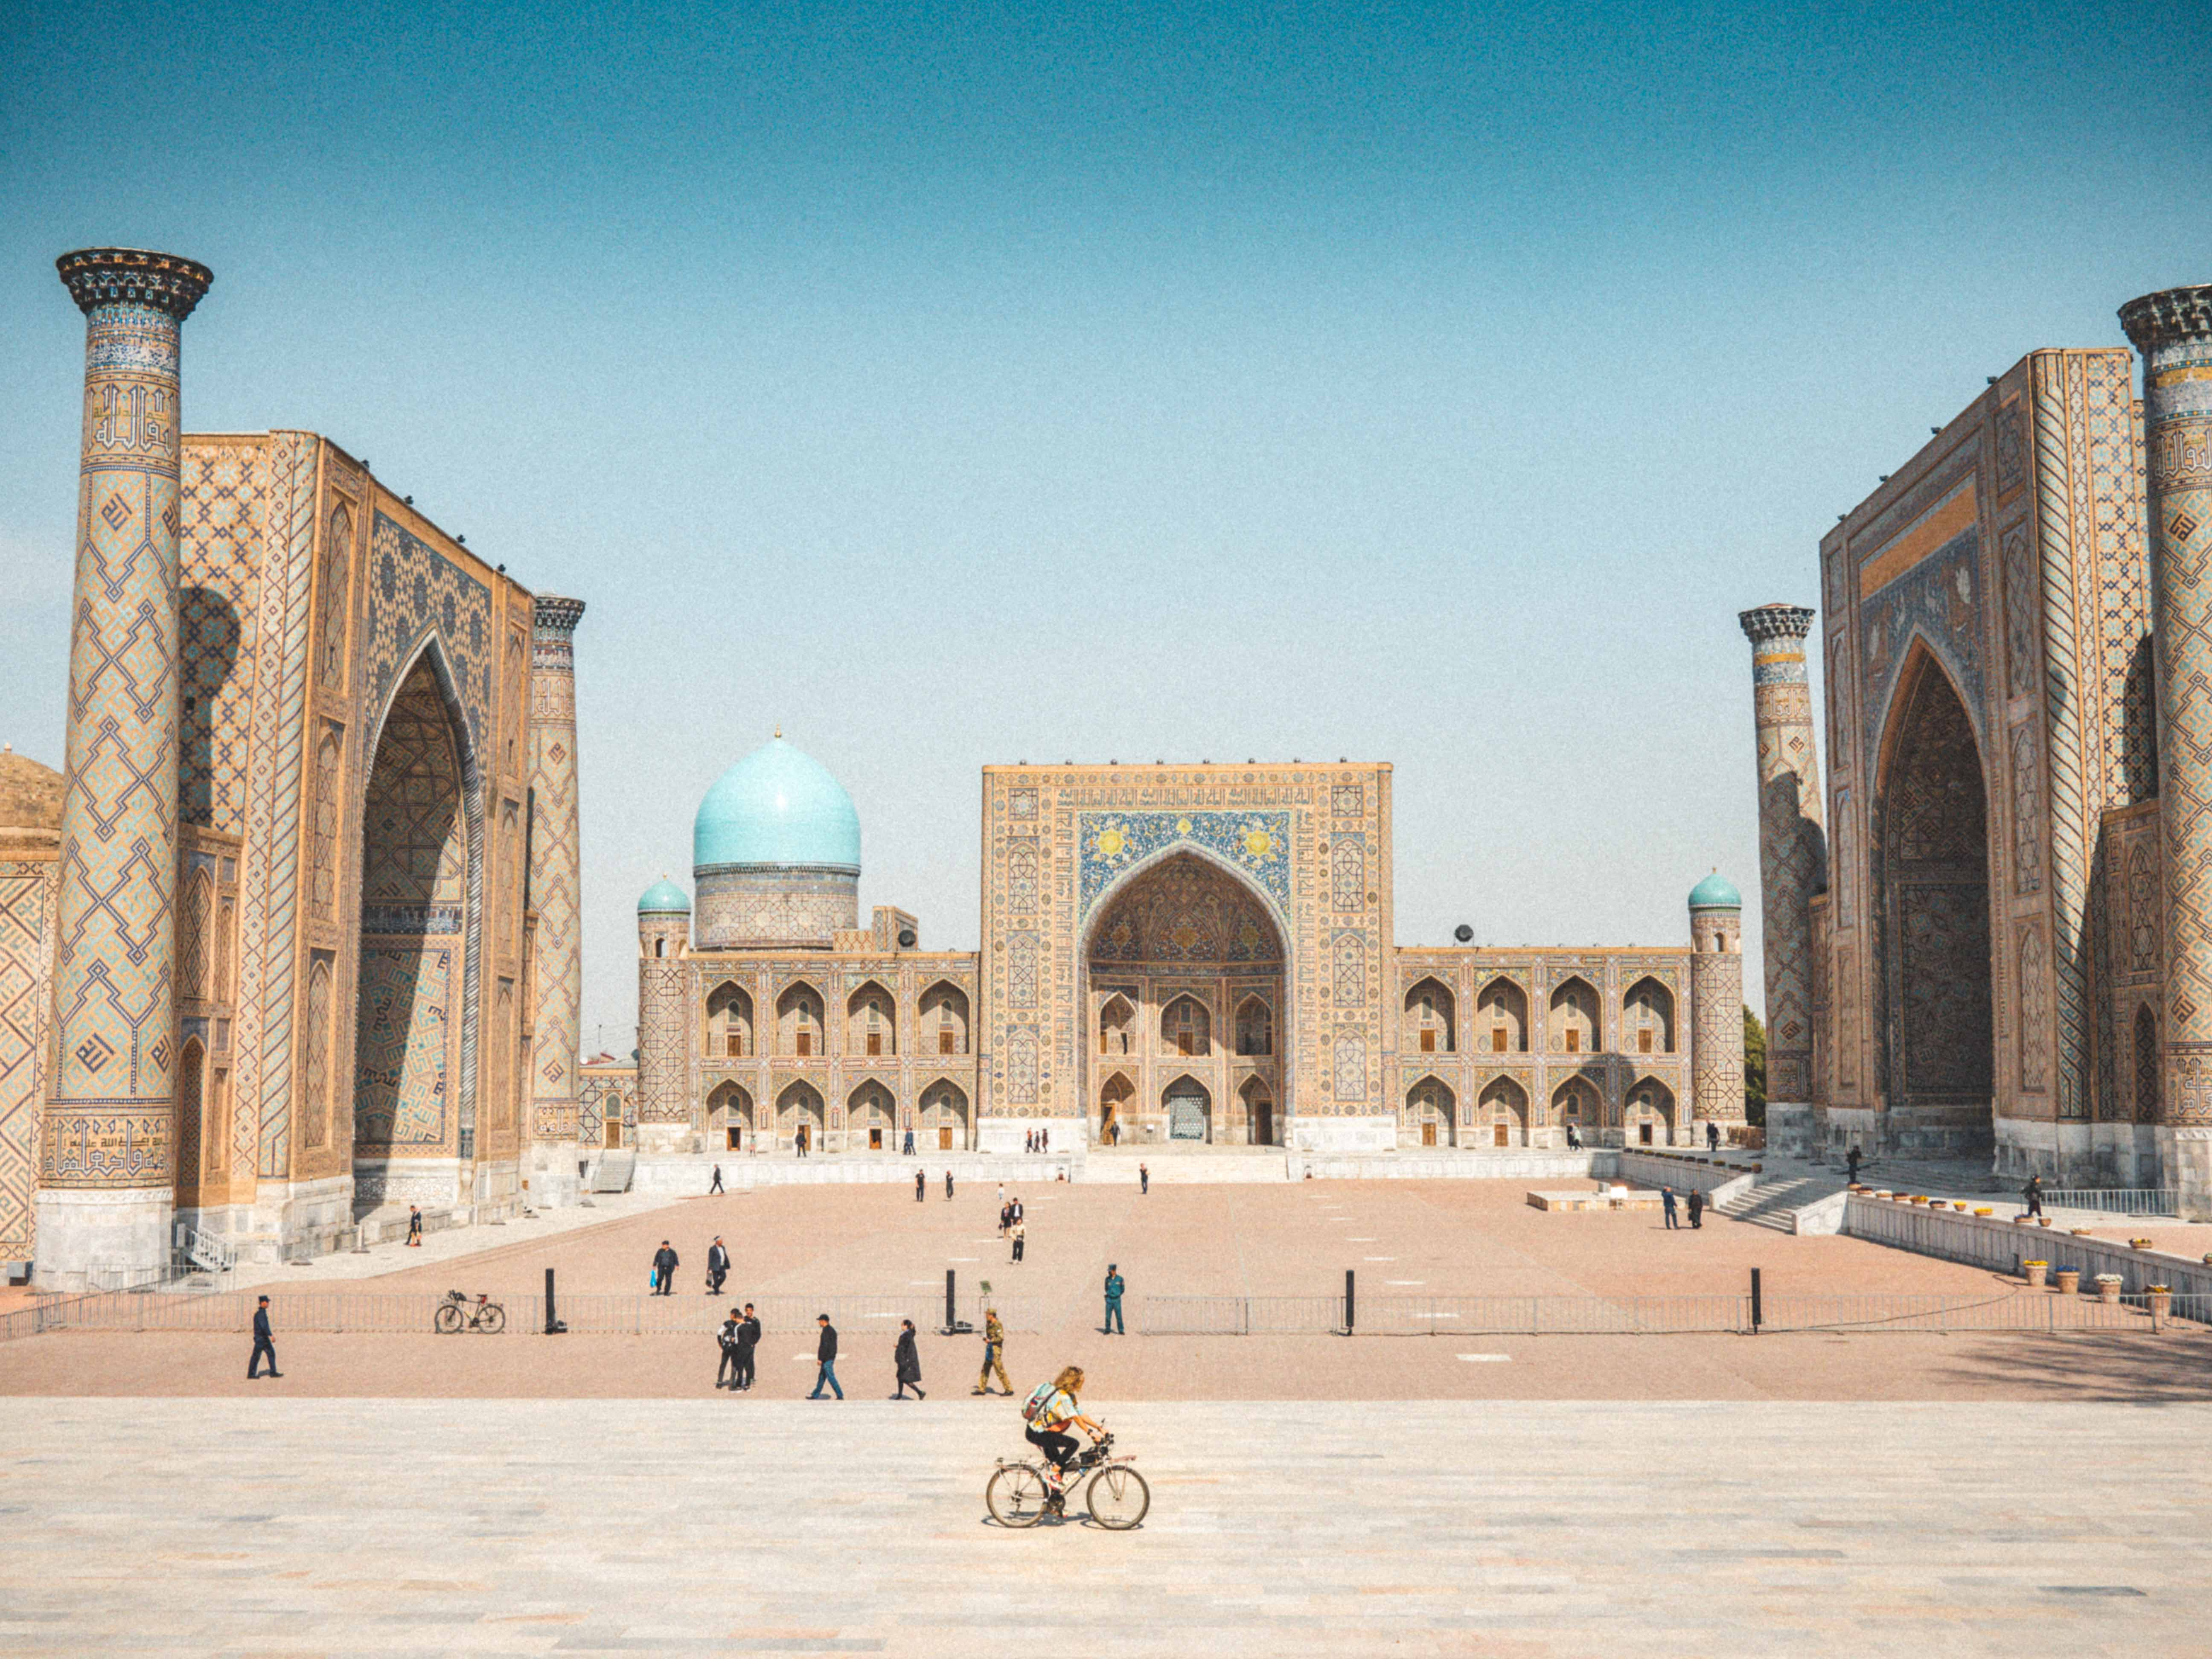 Day 333 – Riding in the Realm of Tamerlane